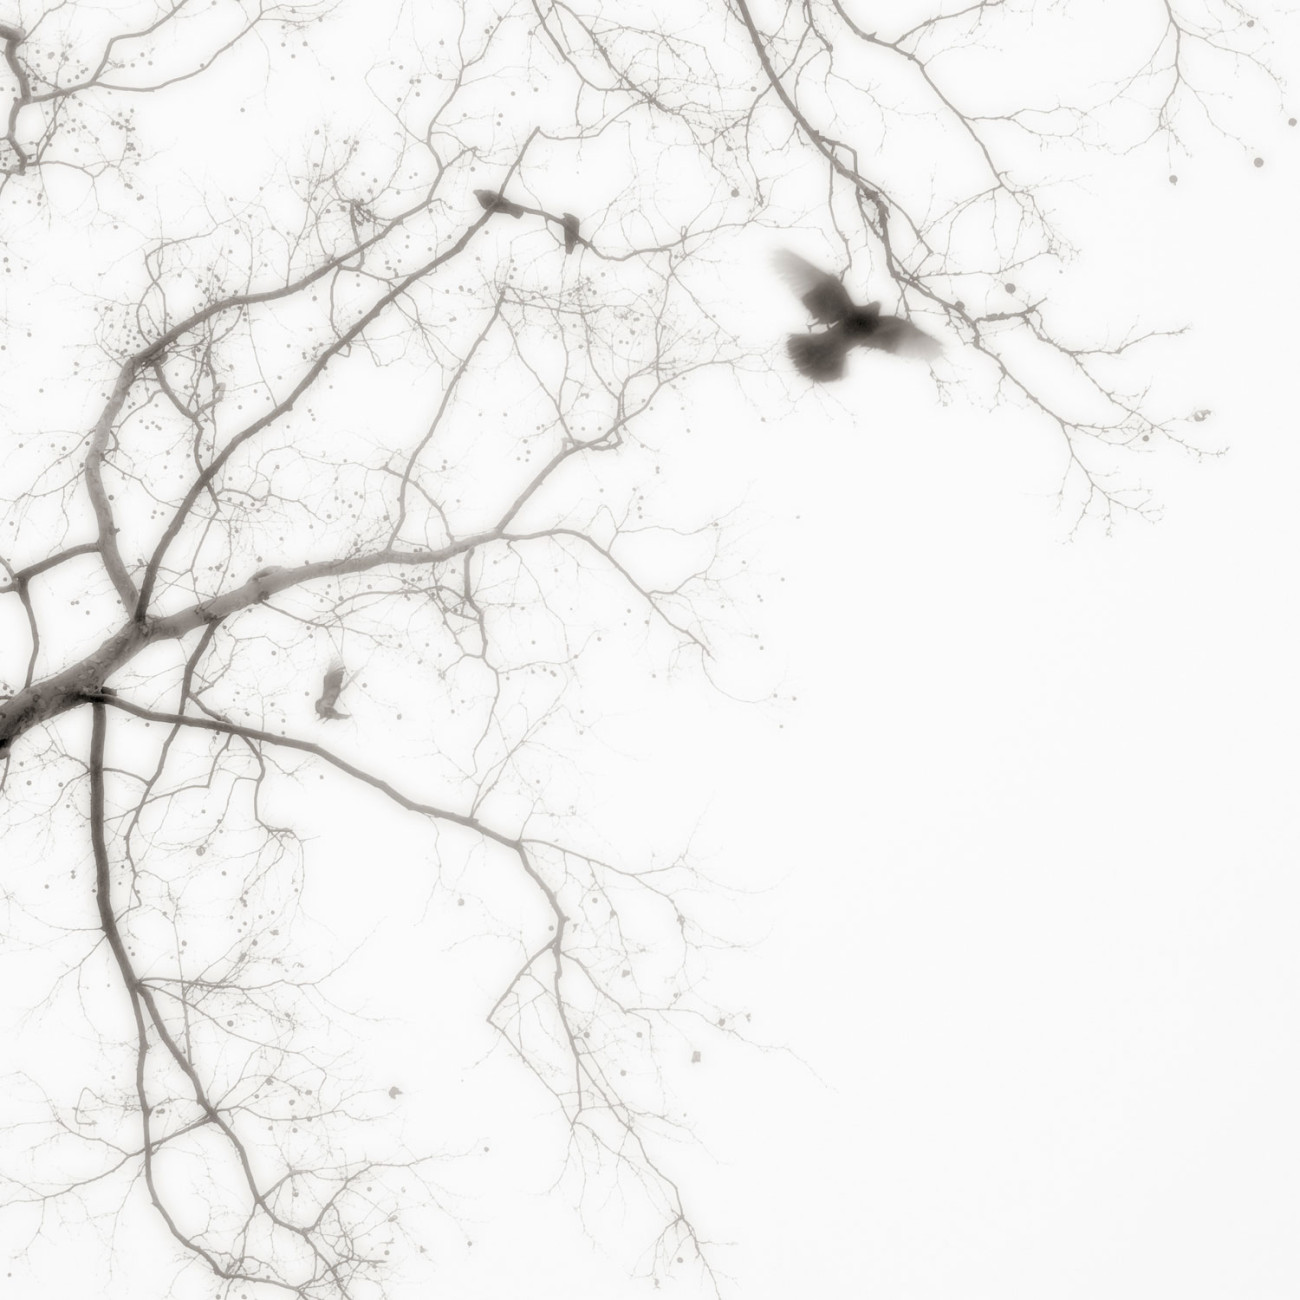 Pigeons and tree branches, New York, 2006